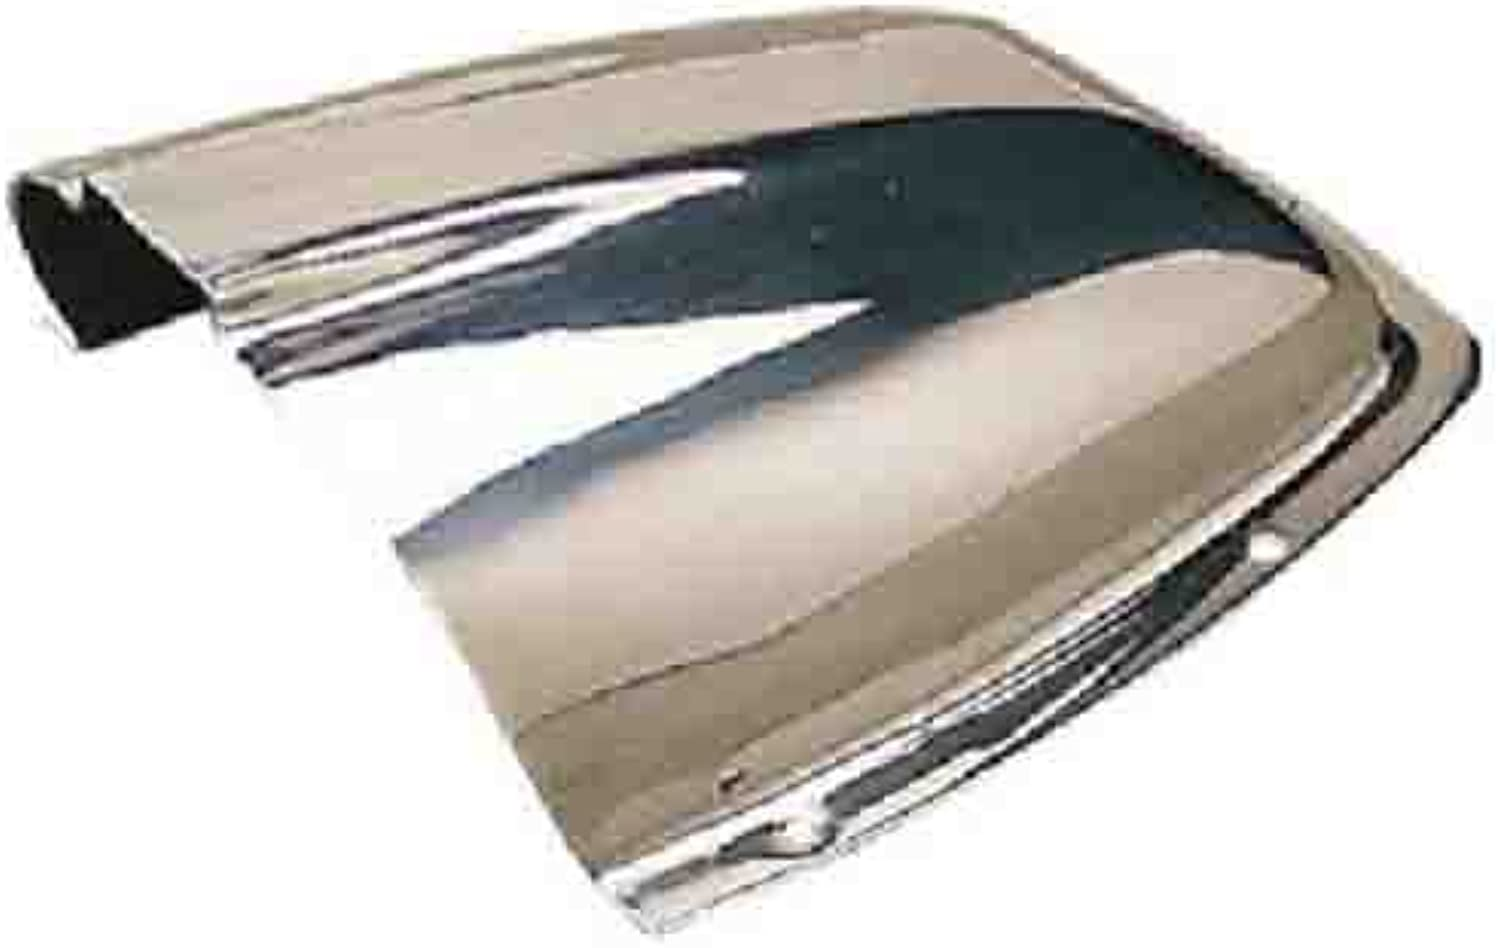 CLAM SHELL VENT Stainless Steel 71 2